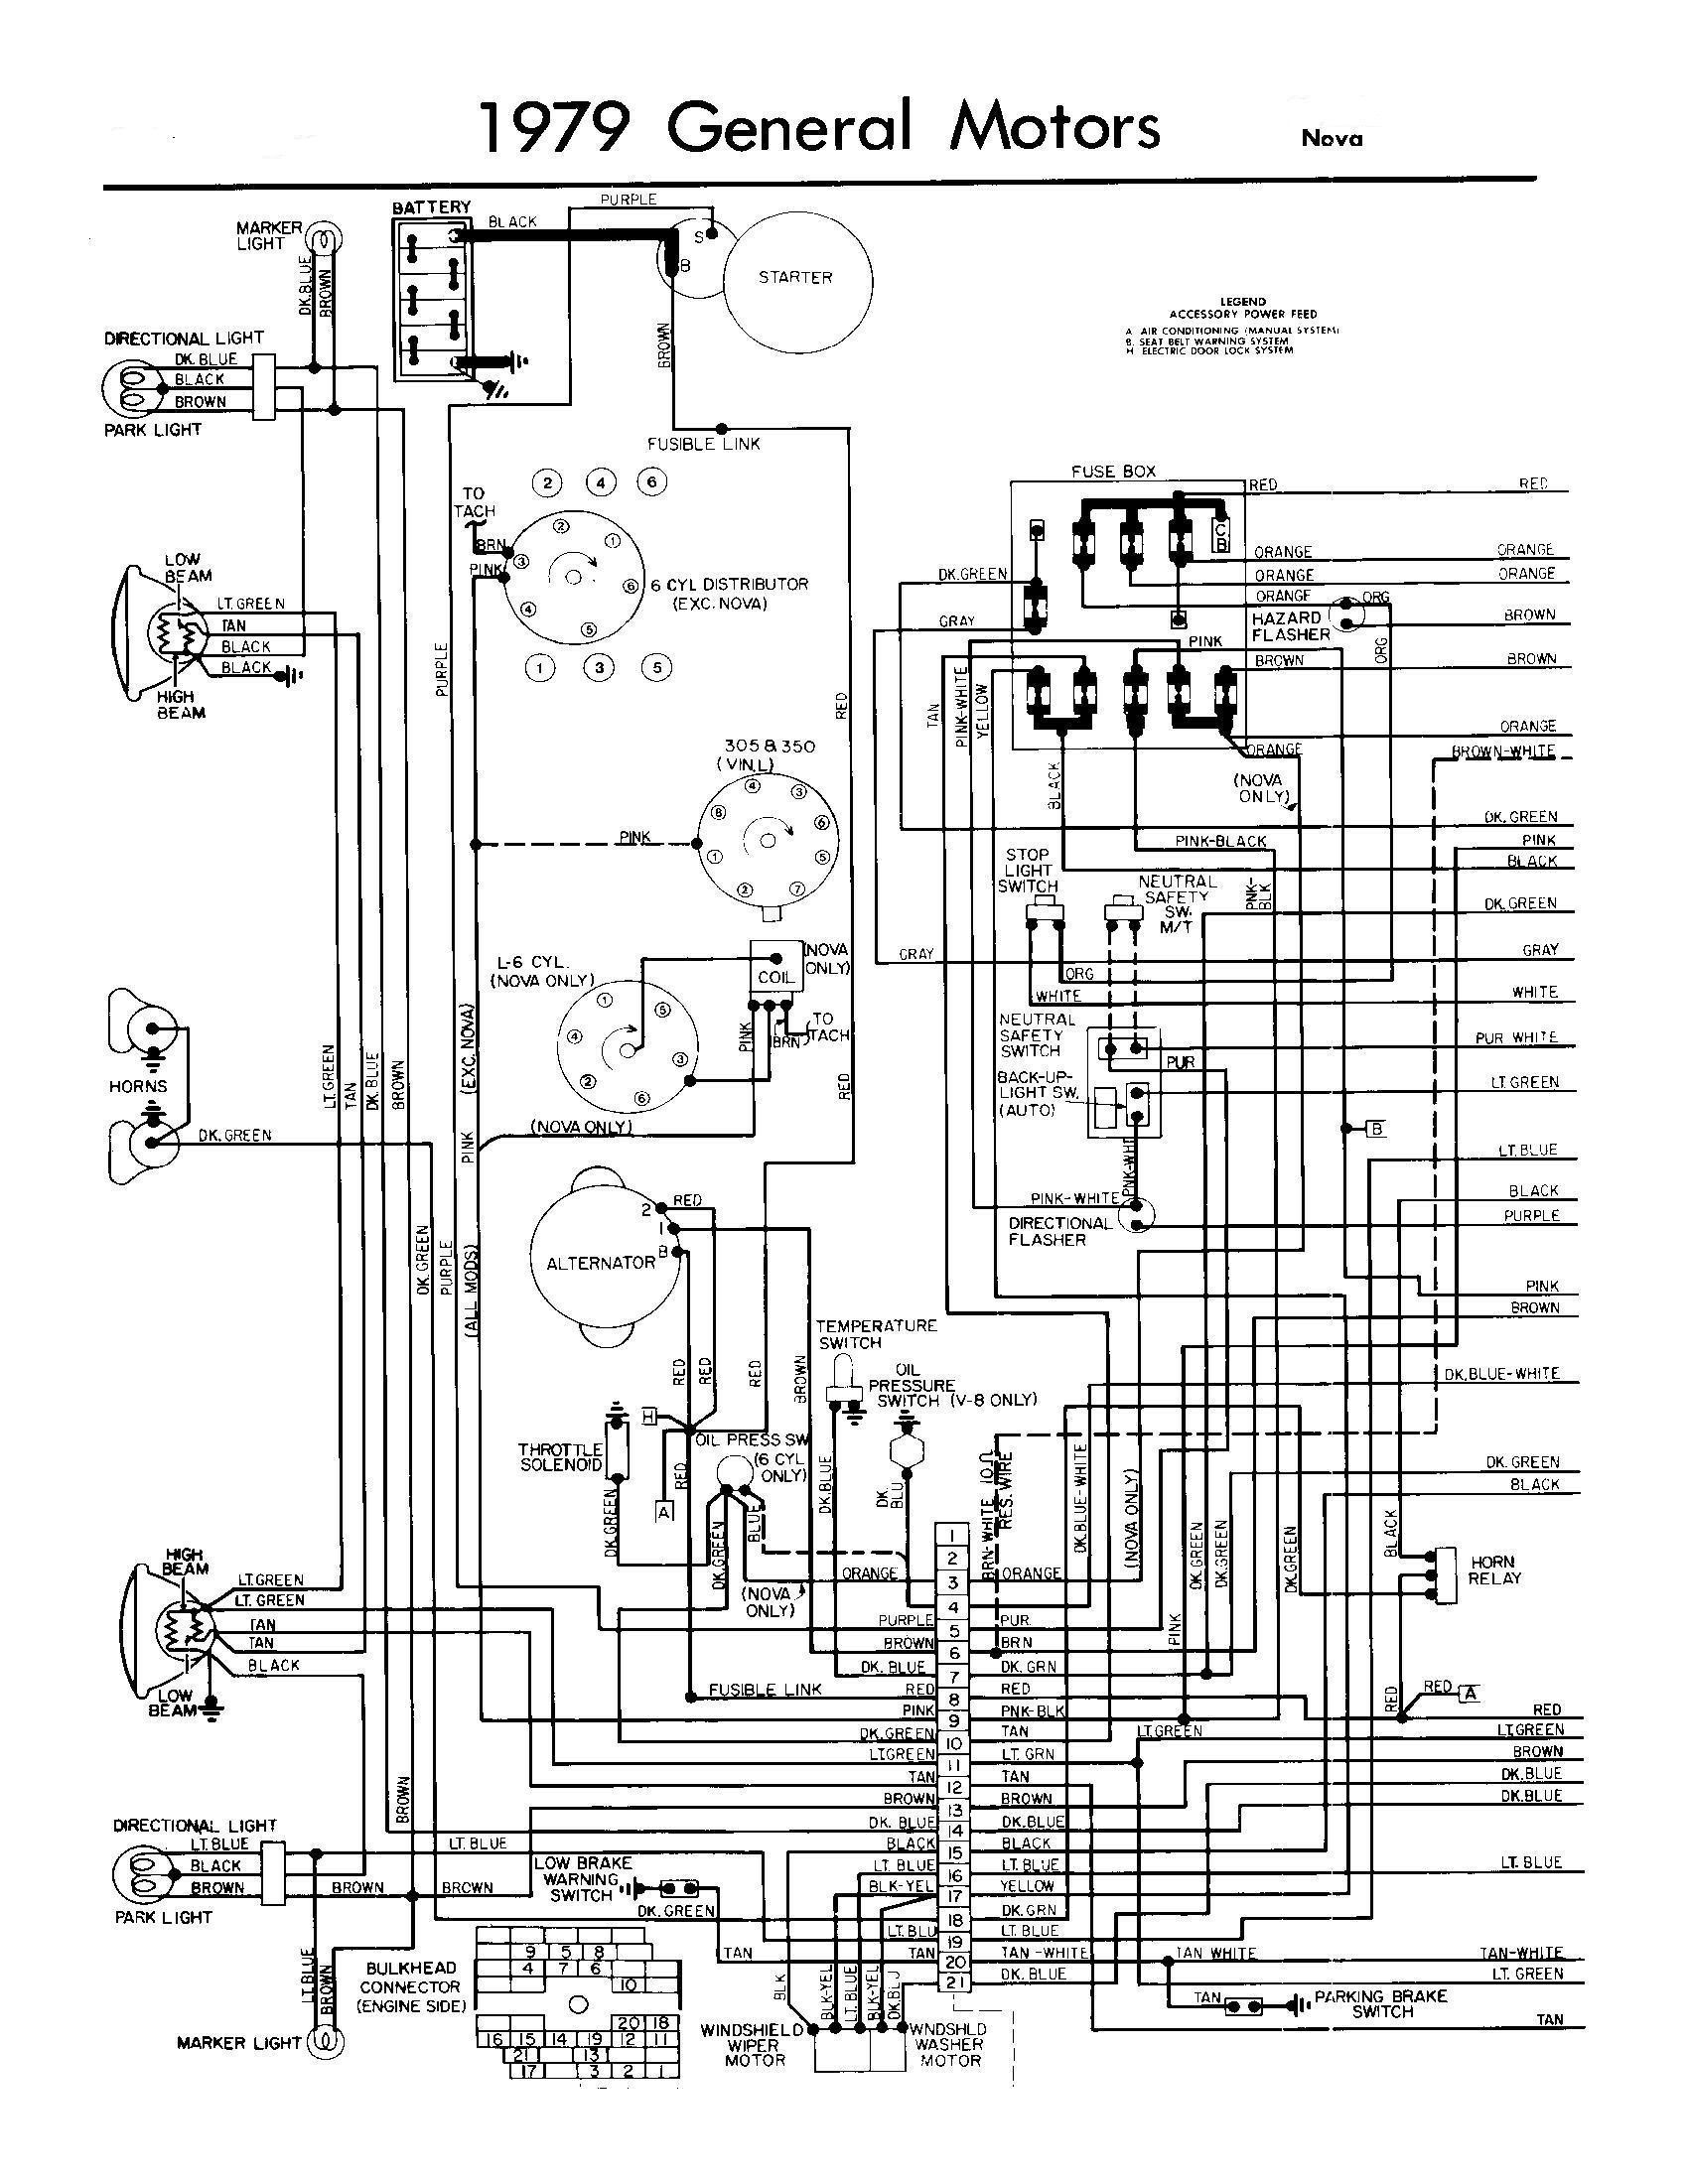 Electric Meter Box Wiring Diagram All Generation Wiring Schematics Chevy Nova forum Of Electric Meter Box Wiring Diagram